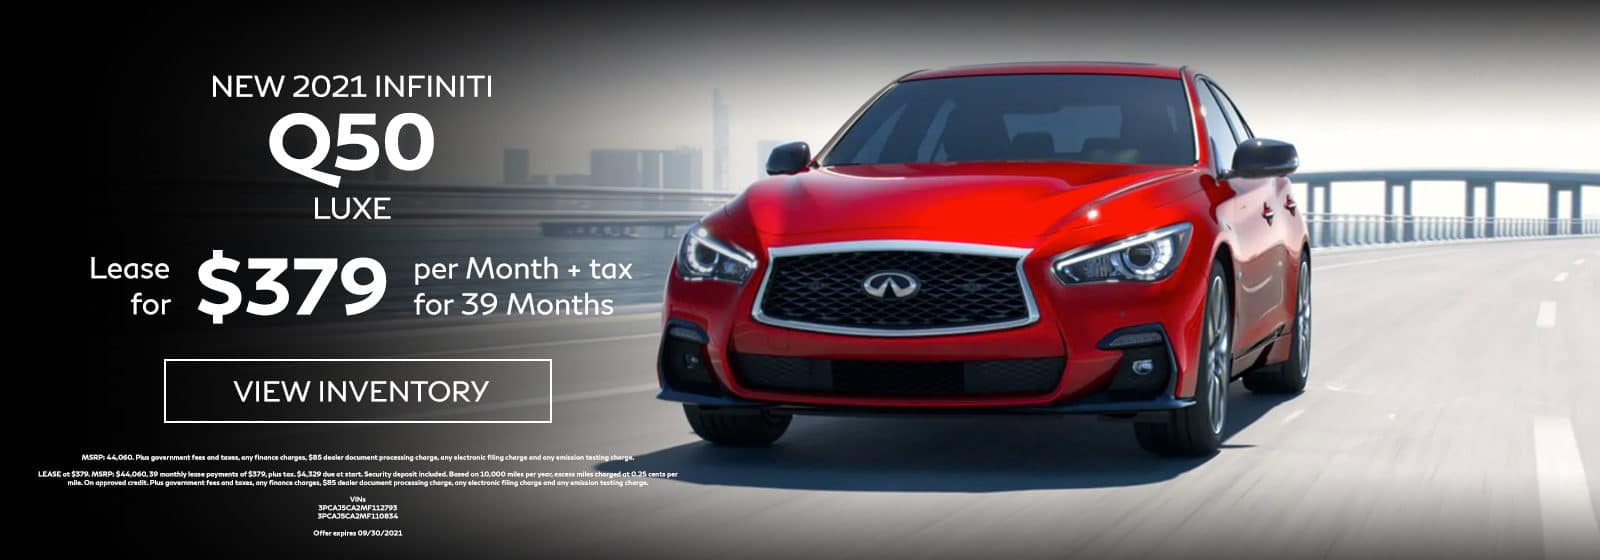 New 2021 INFINITI Q50 LUXE Lease for $379 Per Month + Tax for 39 Months